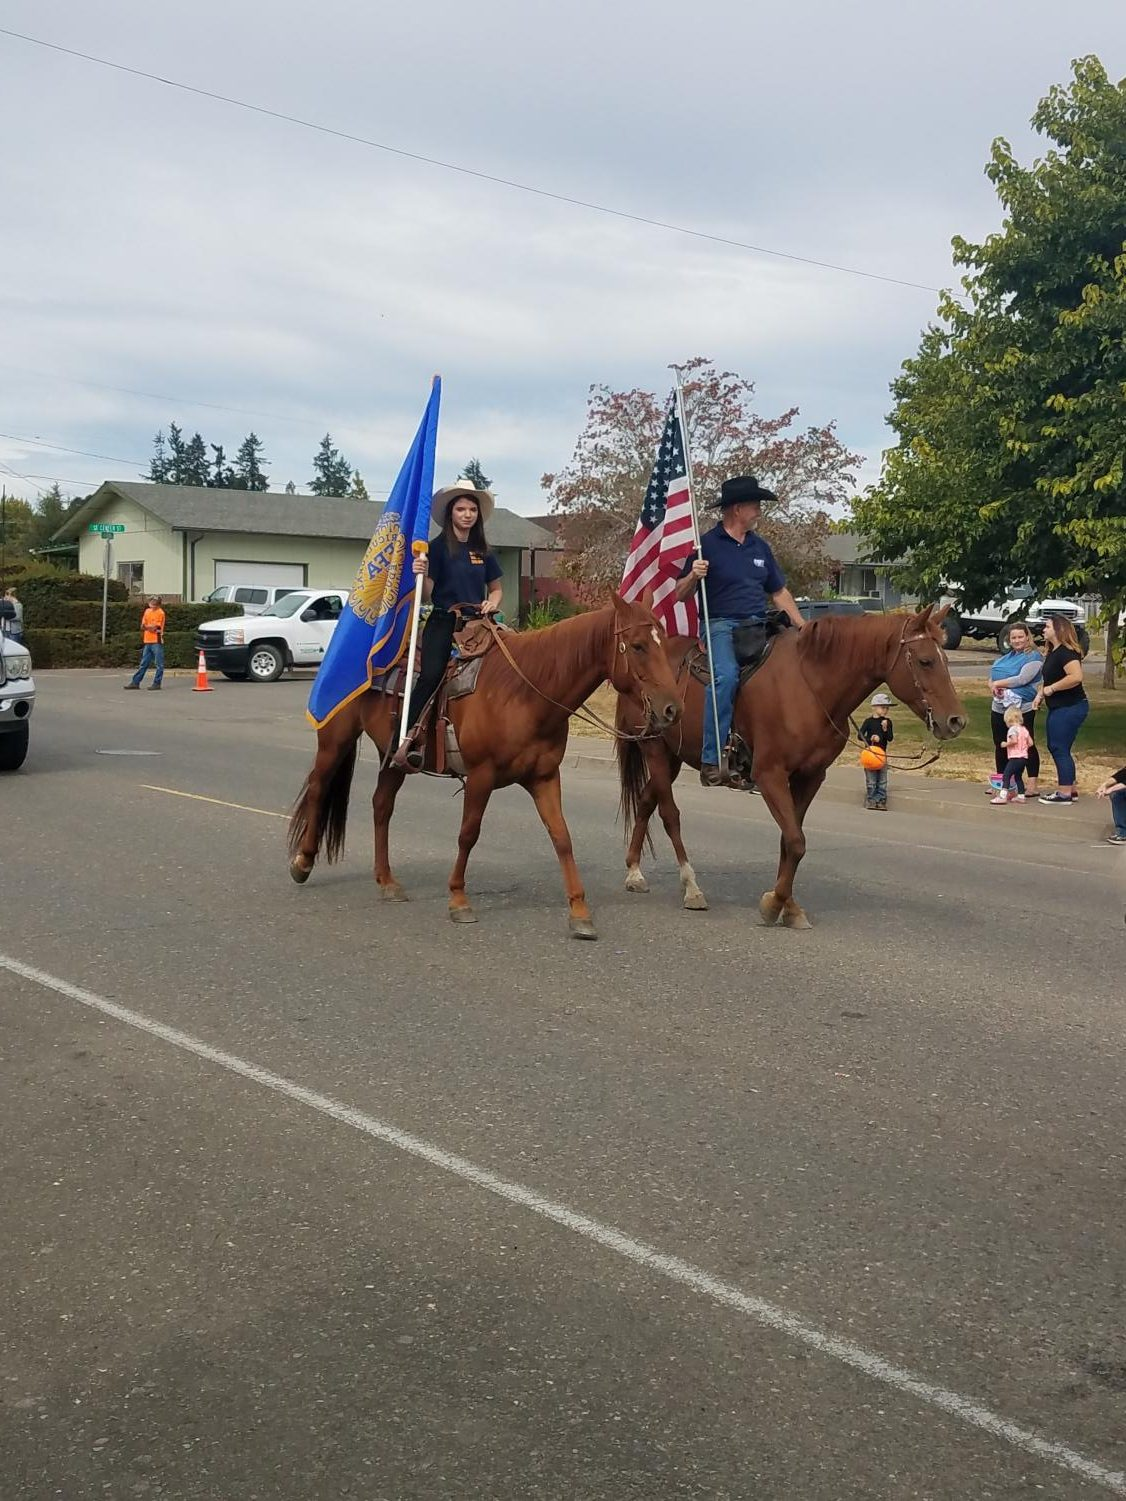 Former+WMS+student+and+current+DHS+student%2C+Whitney+Evans+carries+the+flag+on+horseback+during+the+parade.+